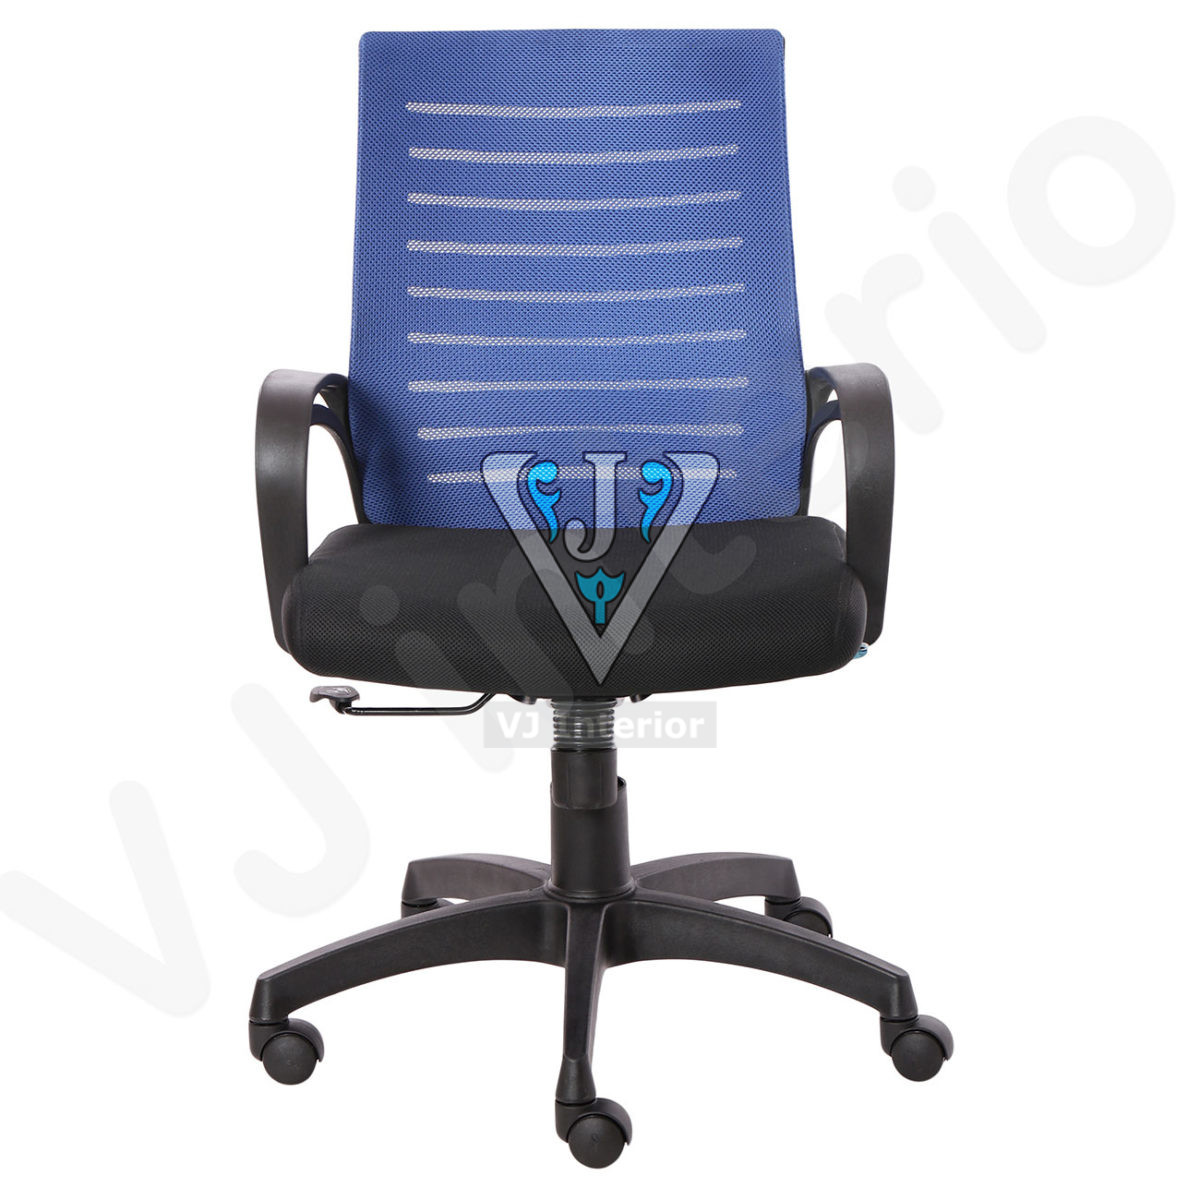 The Granate Black And Blue Task Chair